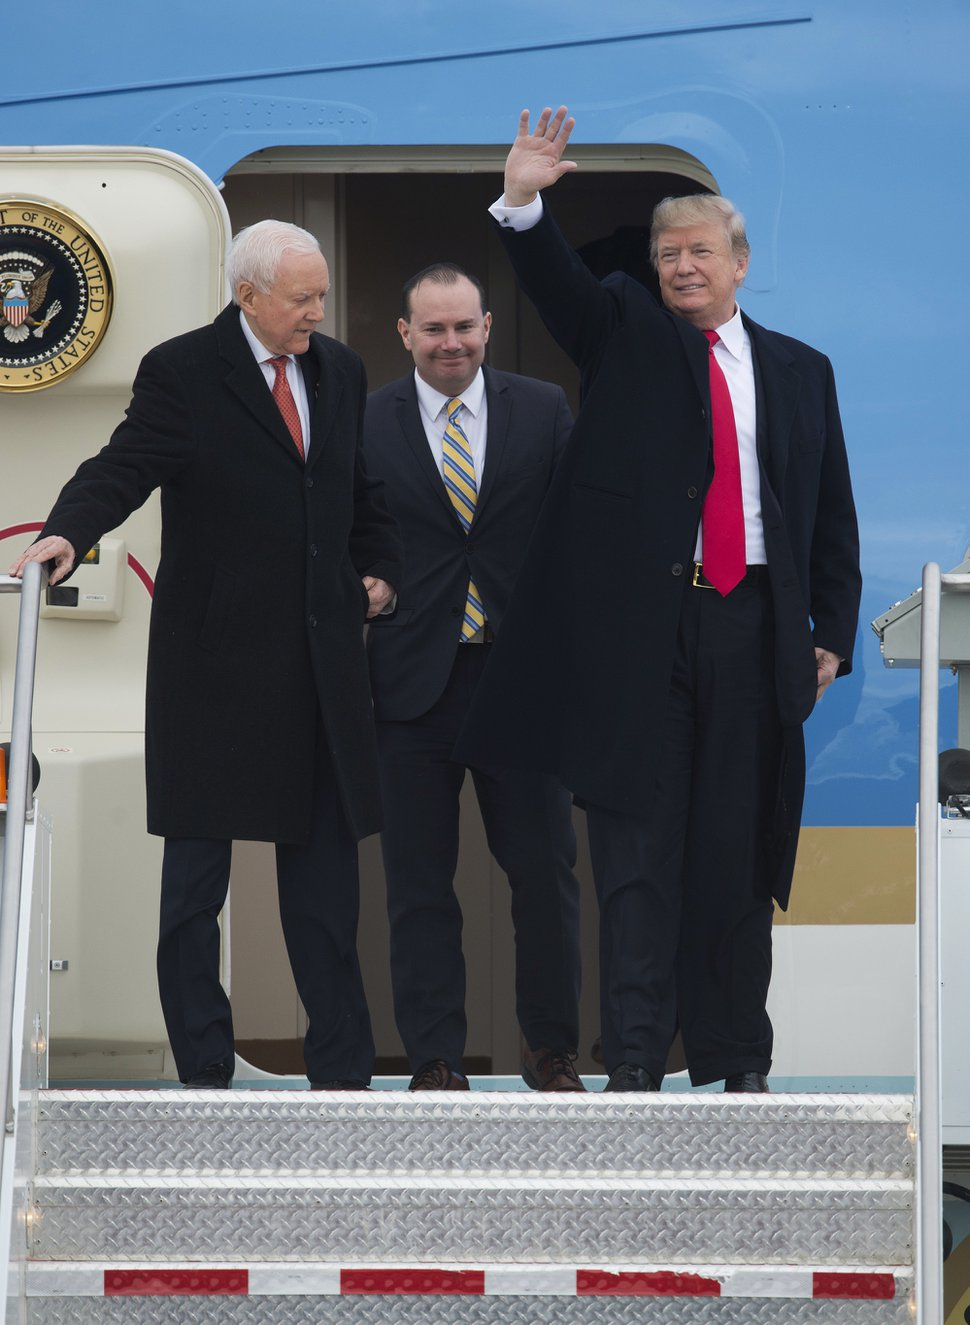 President Donald Trump stands with Sen. Orrin Hatch, R-Utah, left, and Sen. Mike Lee, R-Utah, center, after arriving at the Ronald R Wright National Air Guard Base in Salt Lake City on Monday, Dec. 4, 2017. (Scott Sommerdorf/The Salt Lake Tribune via AP)